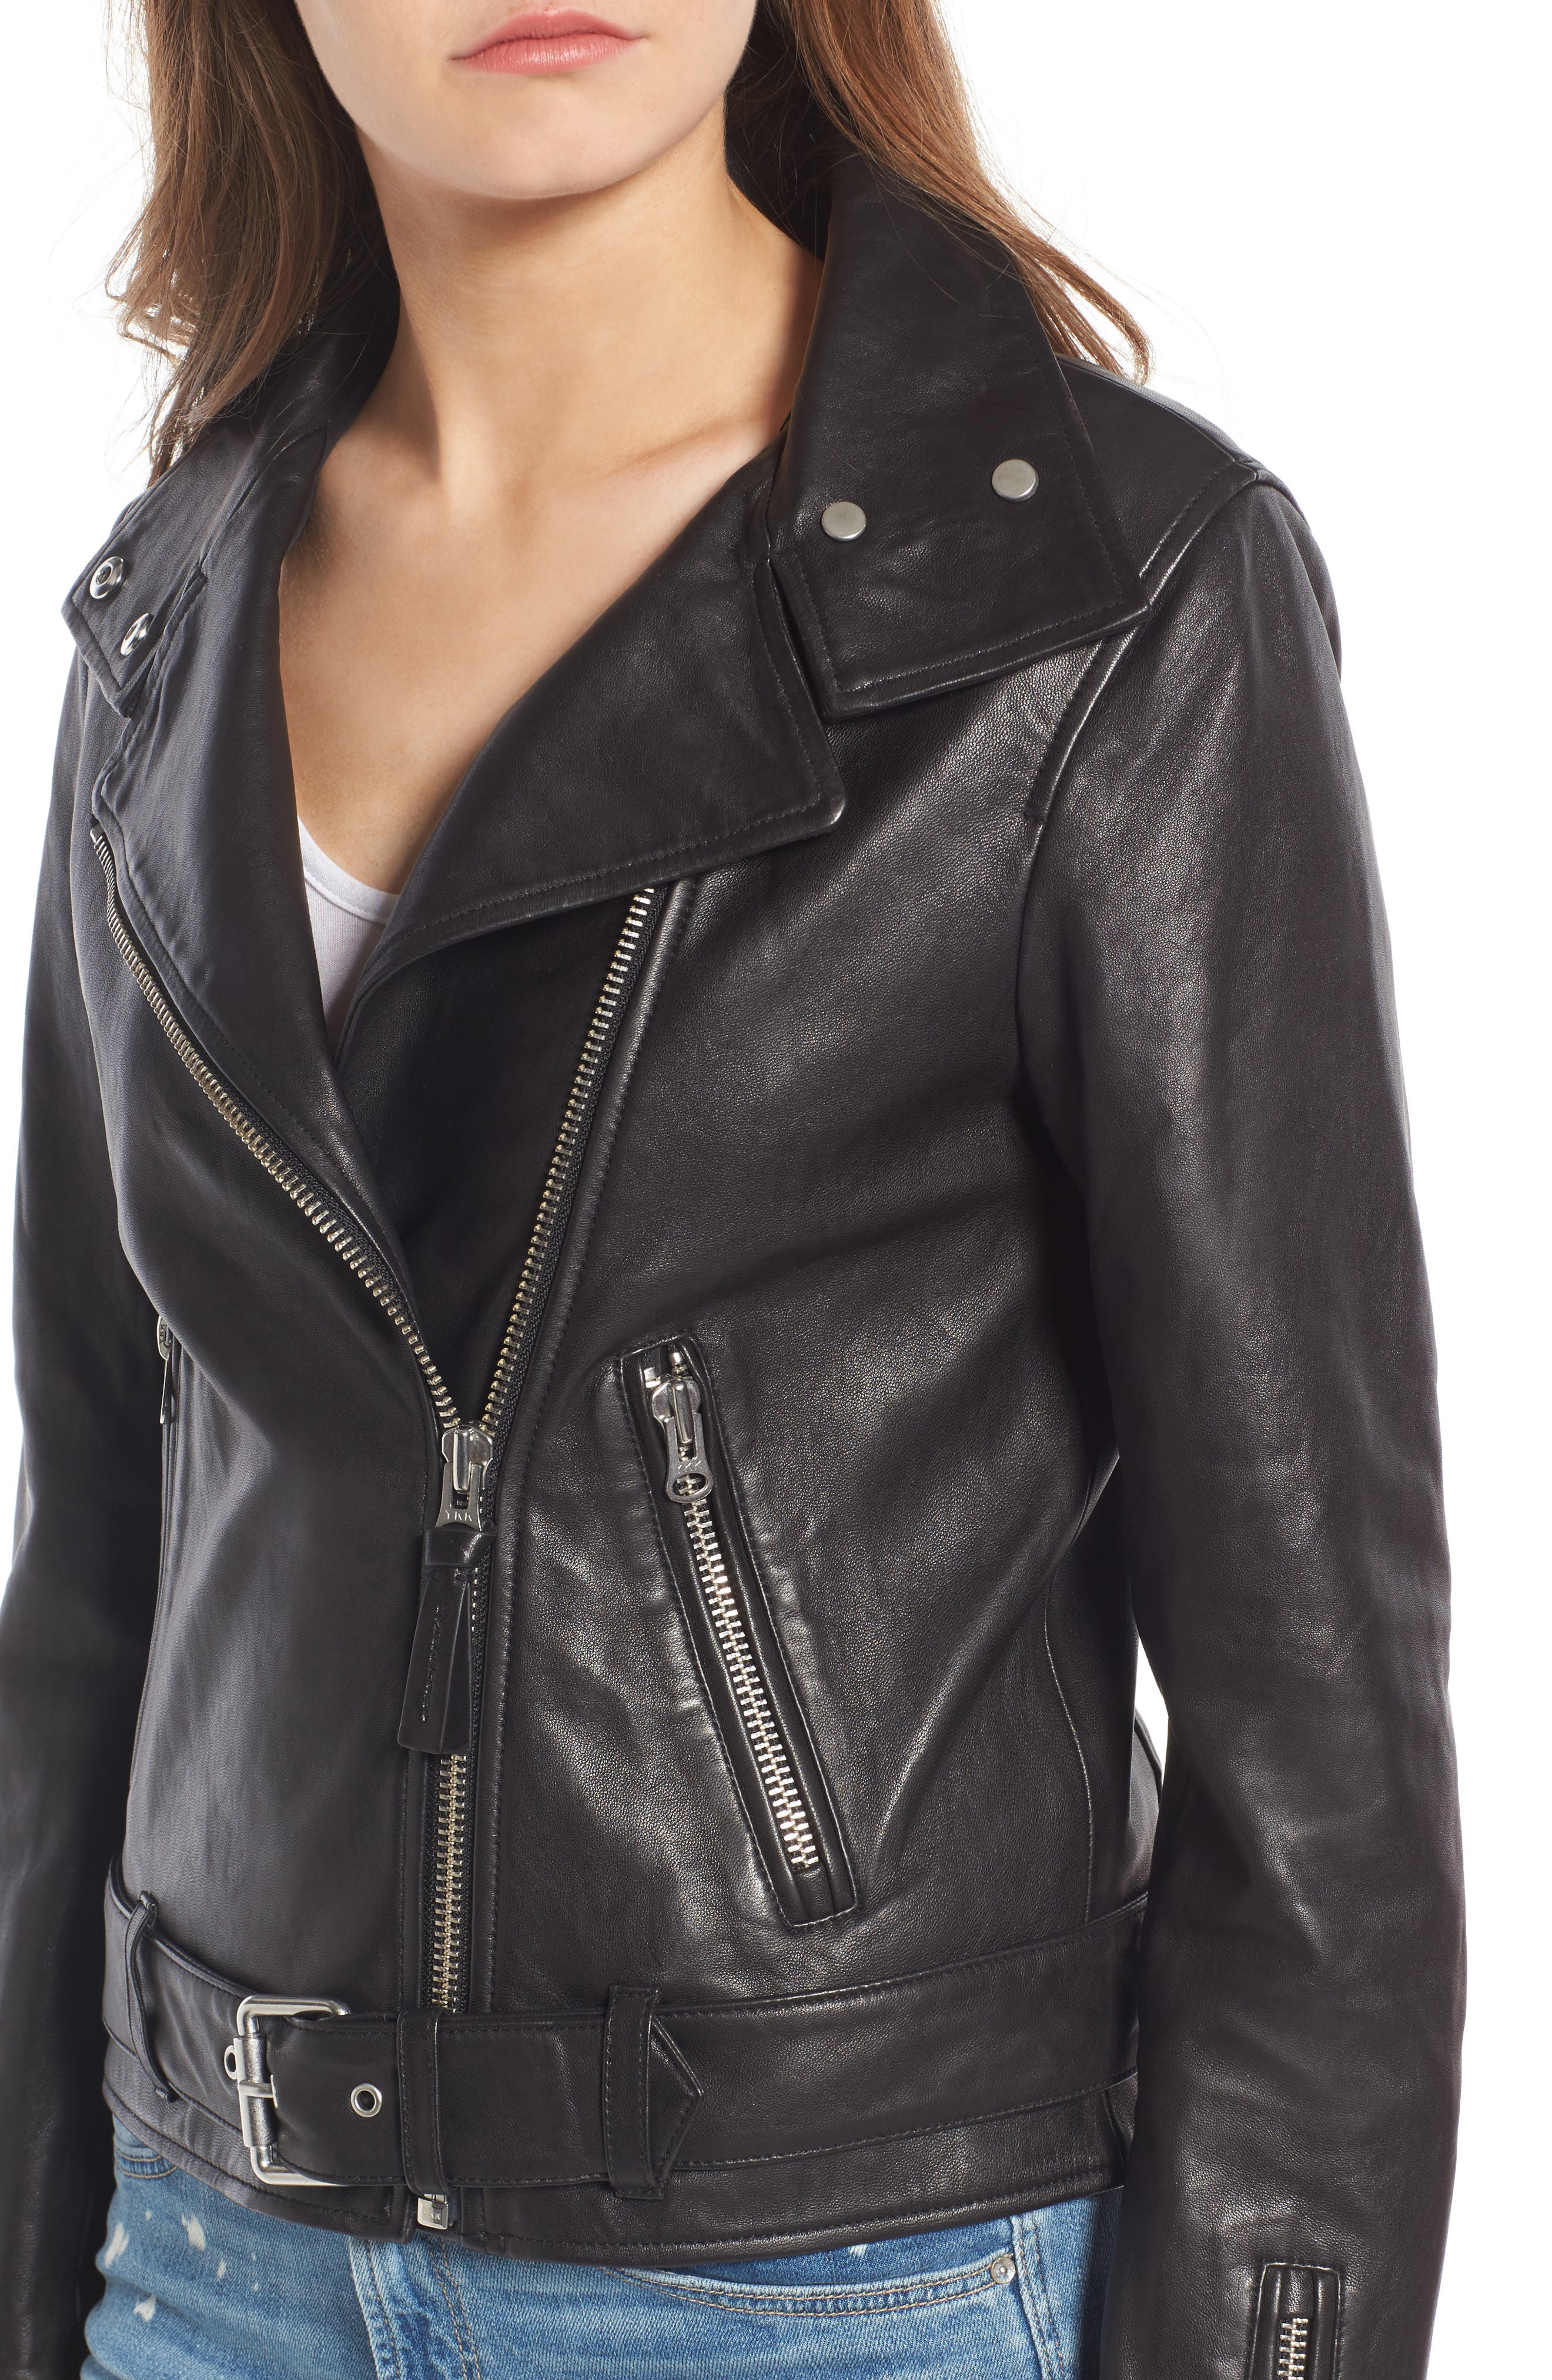 Miela-N Belted Leather Moto Jacket,                             Alternate thumbnail 4, color,                             001